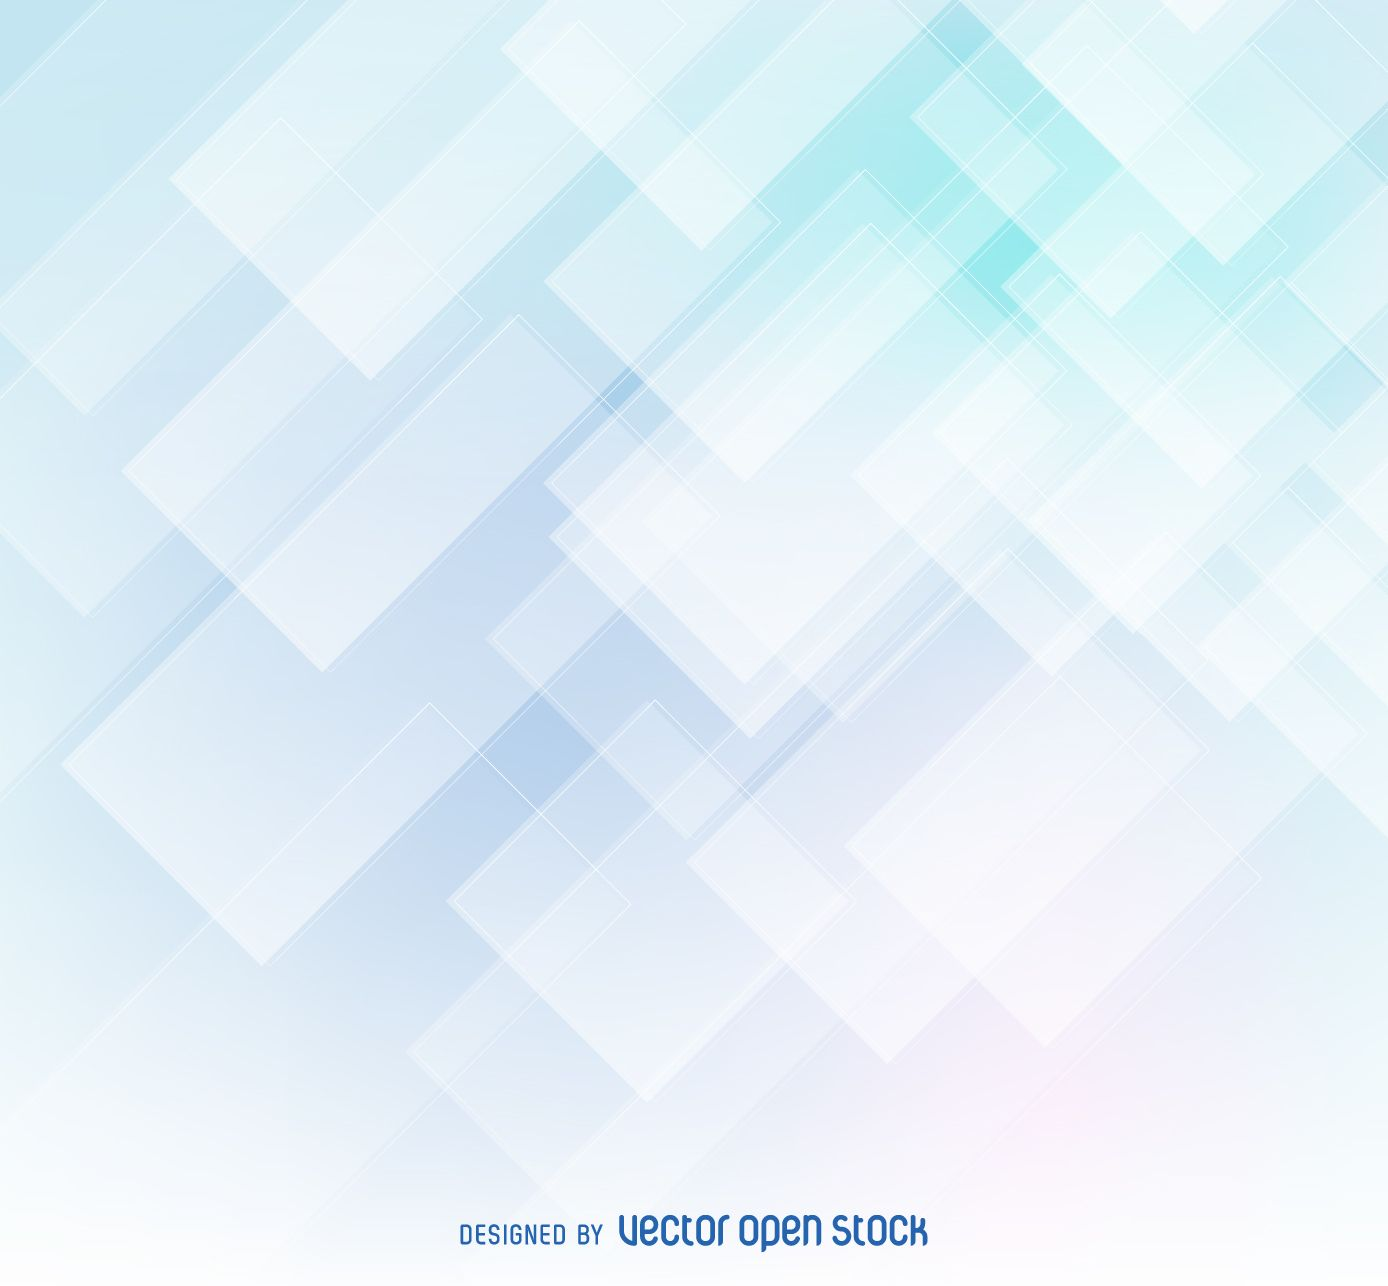 Abstract Background In Tones Of Soft Blue And White Design